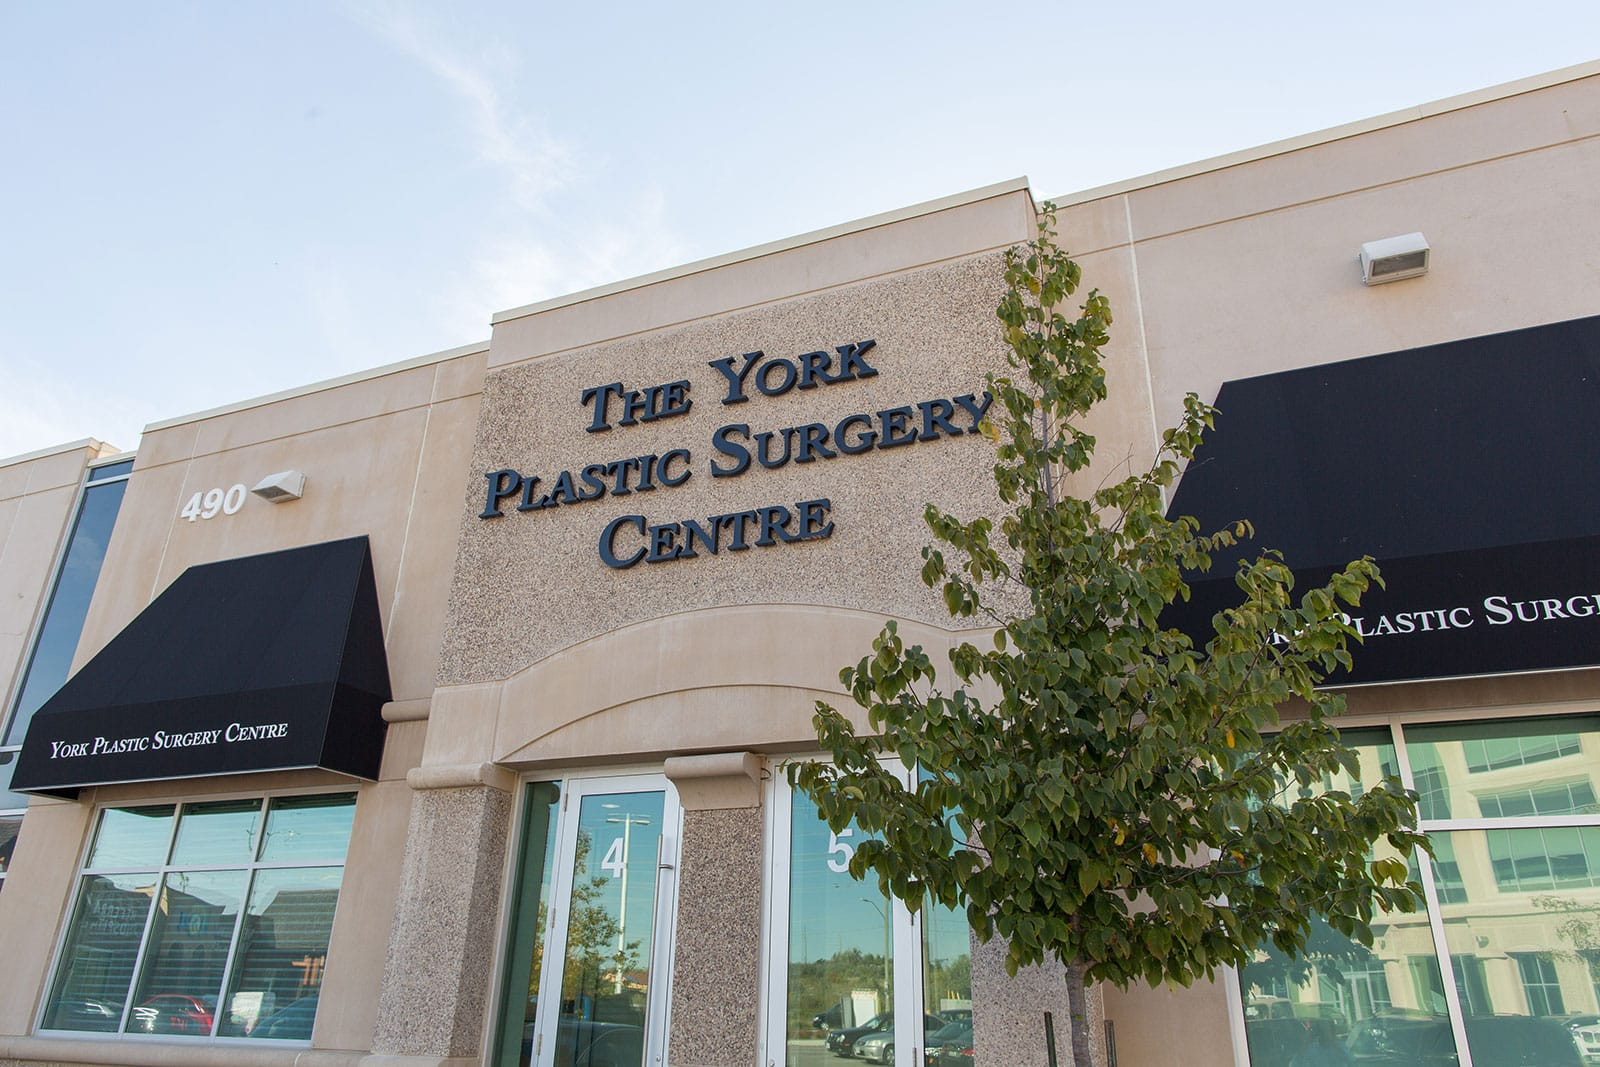 York Plastic Surgery Centre - Plastic Surgeon Newmarket